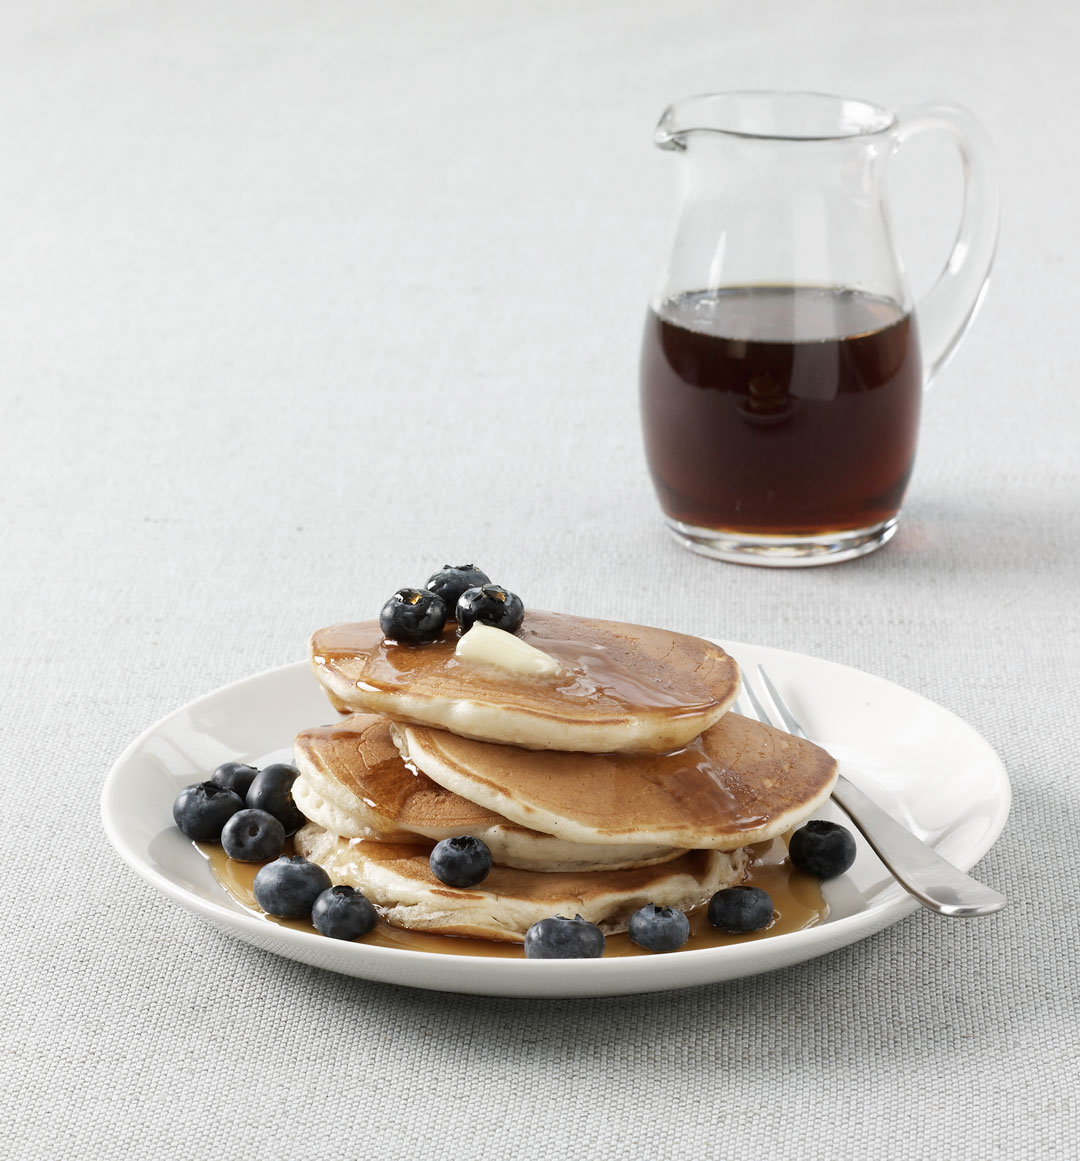 Buttermilk pancakes with blueberries and syrup, as featured in Simple & Classic